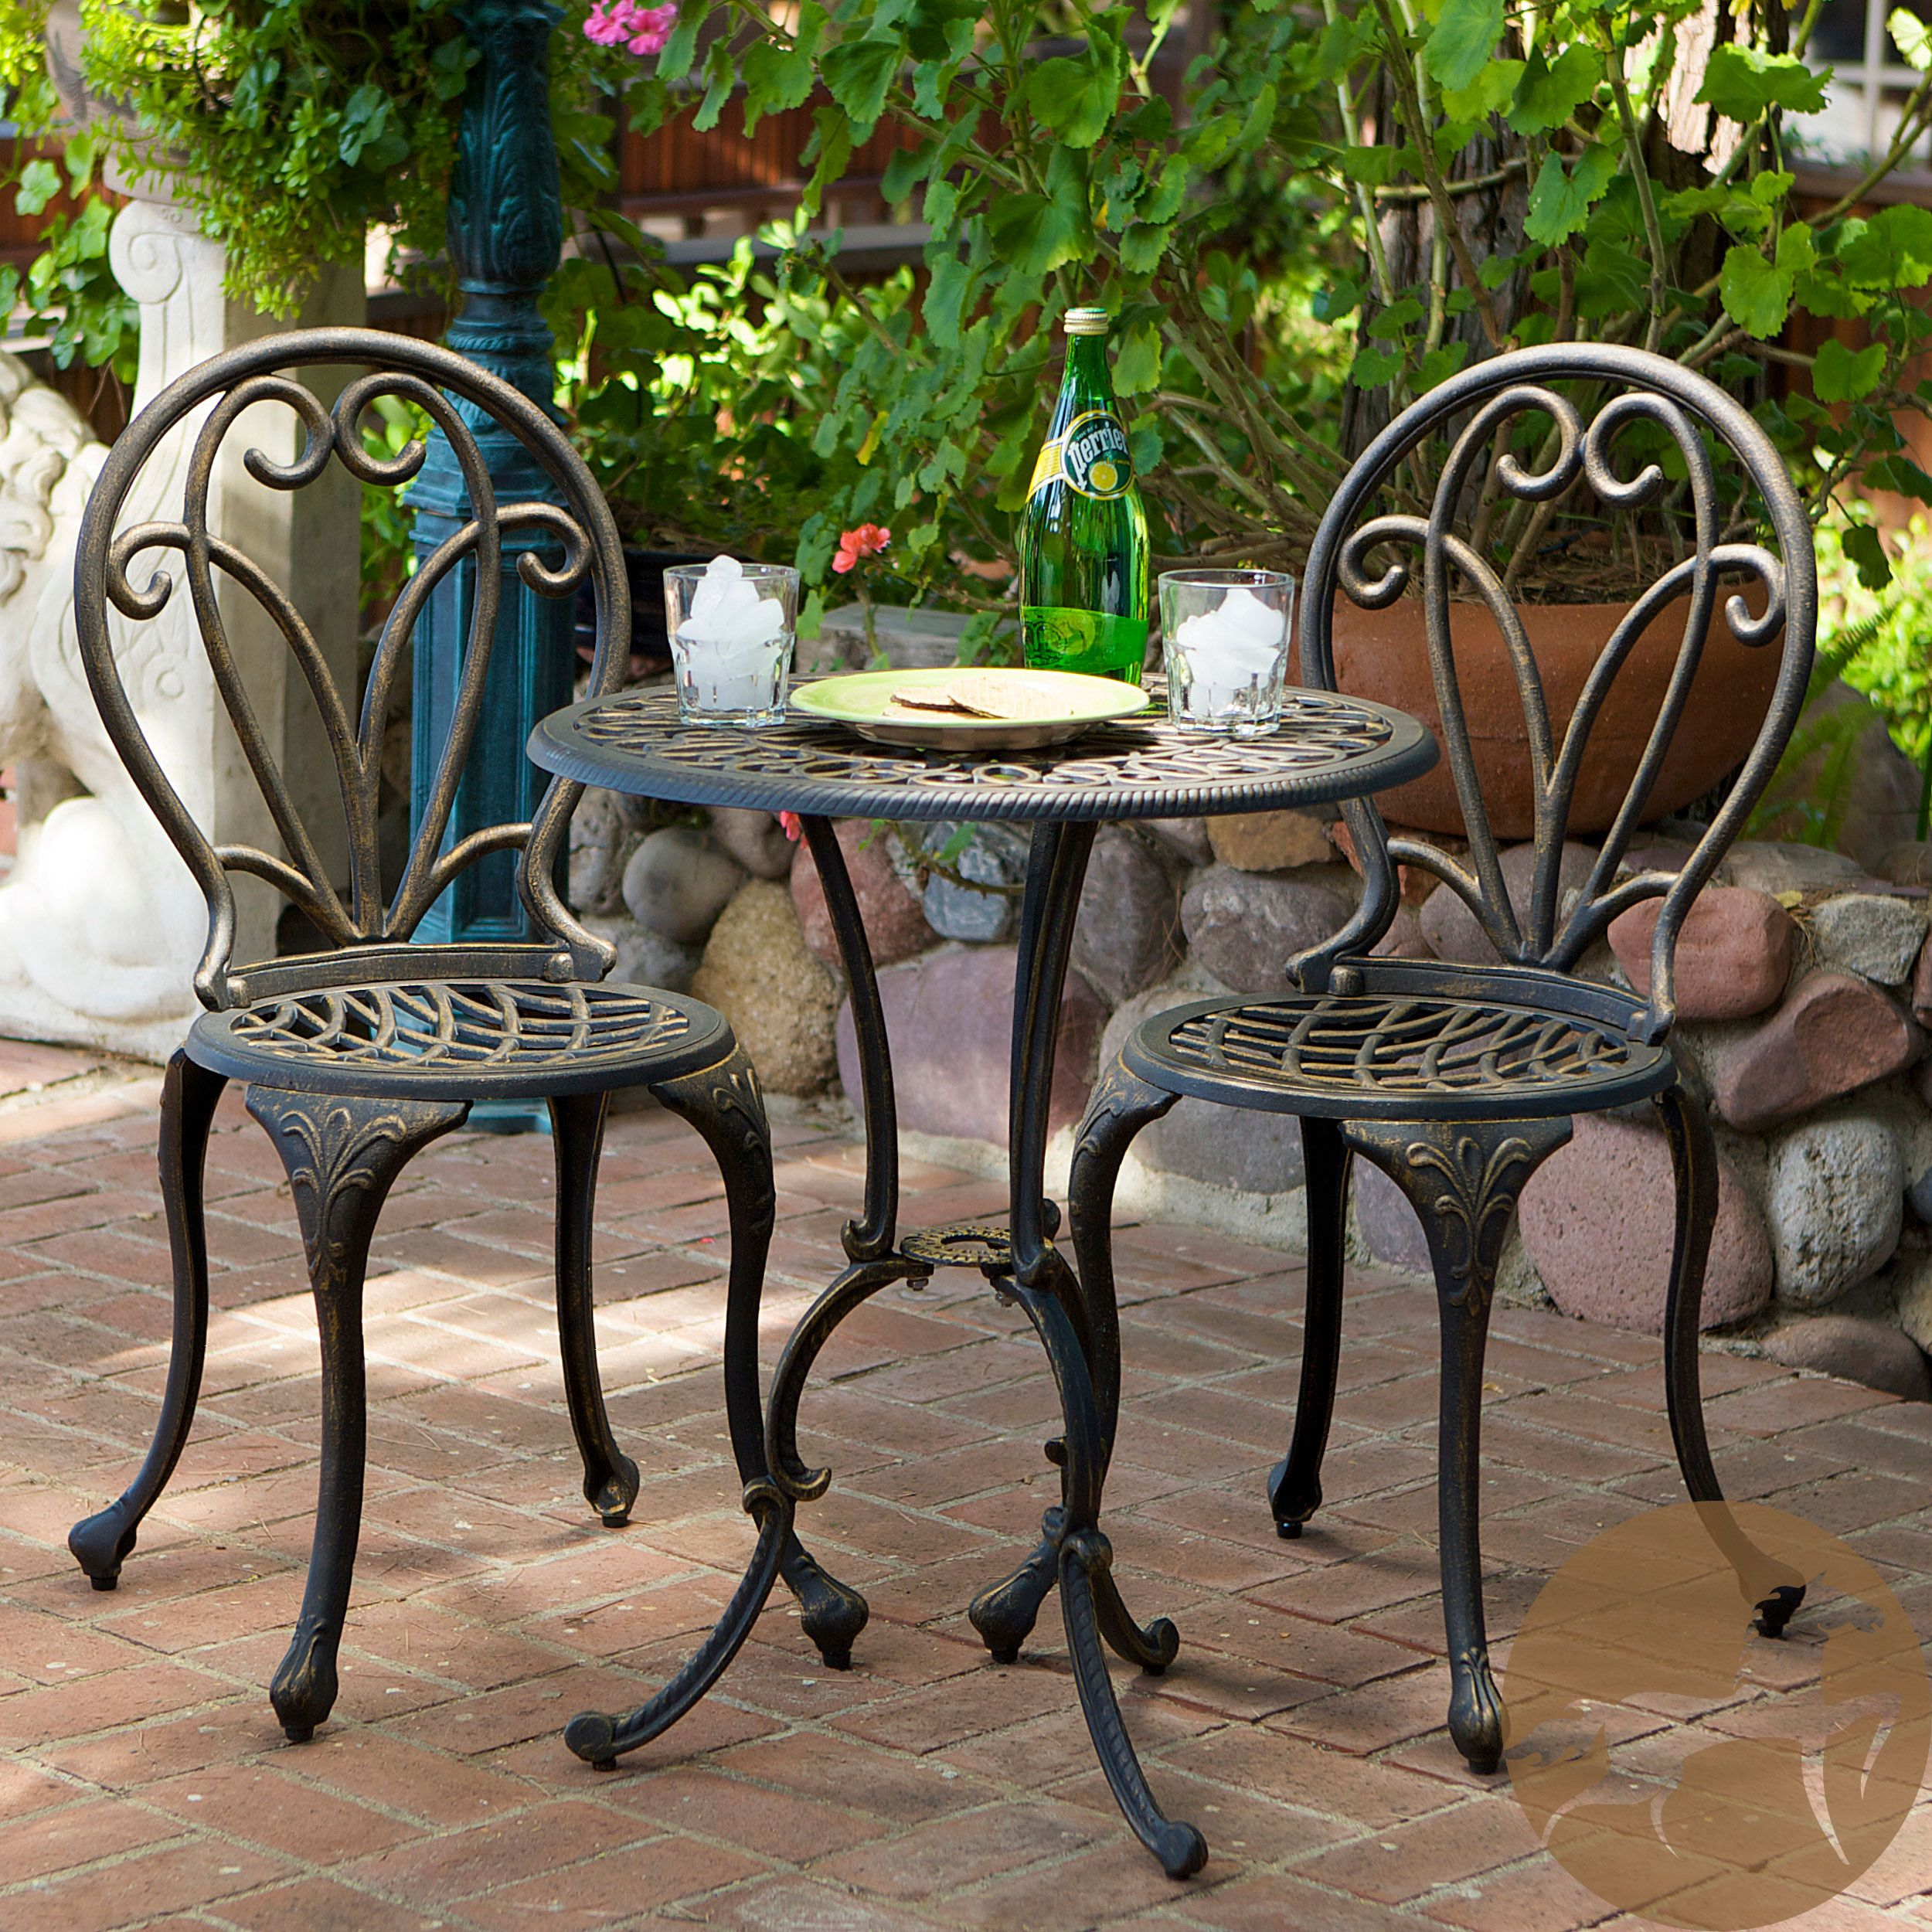 Outdoor Cafe Chairs This French Style Outdoor Bistro Set Will Lend Classy